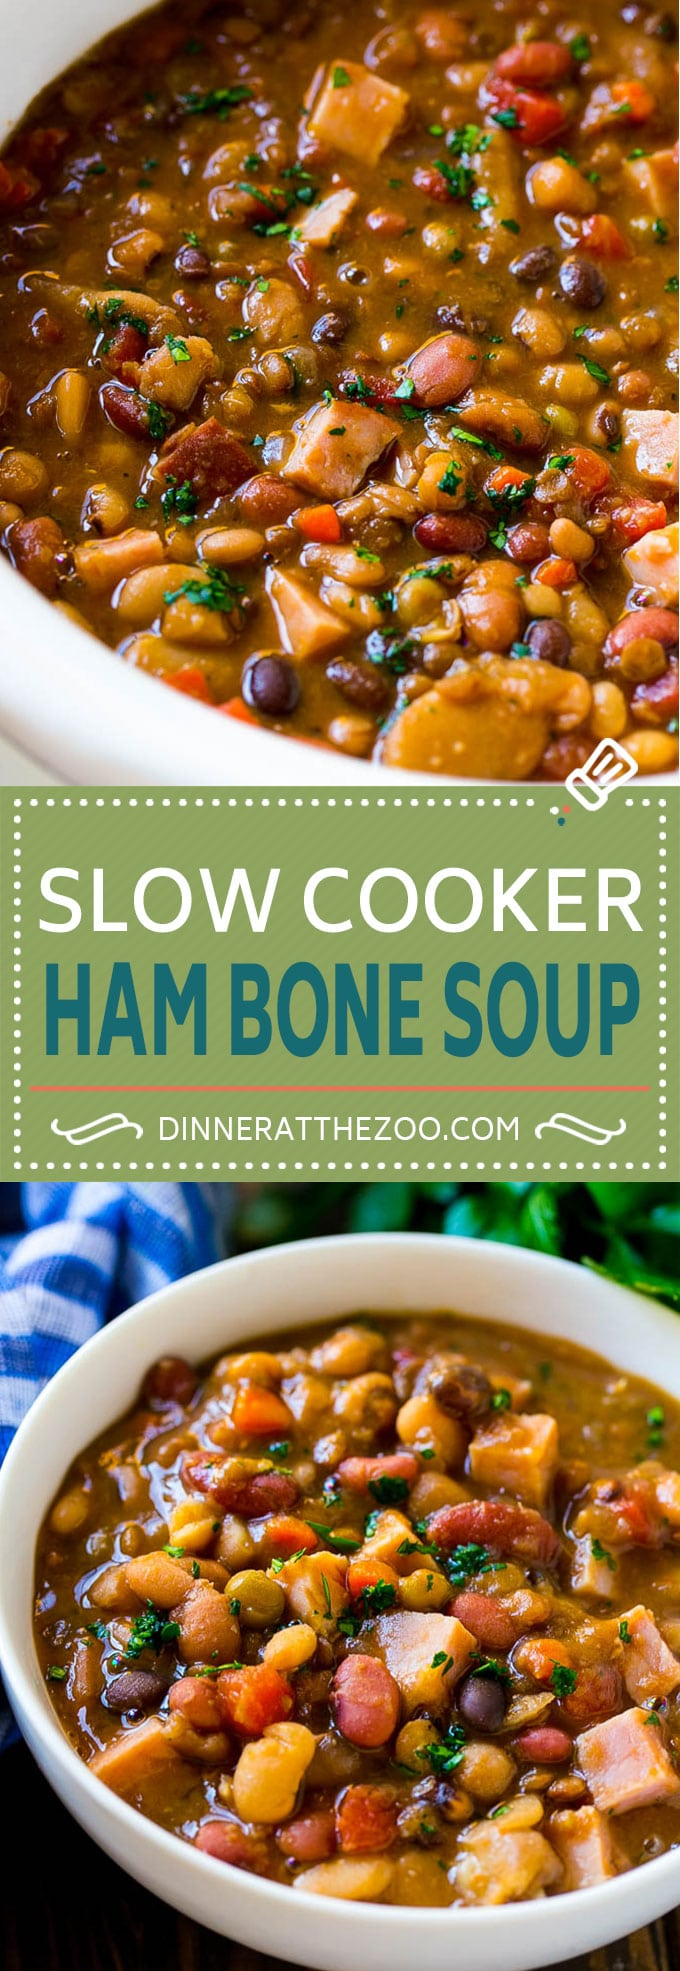 Slow Cooker Ham Bone Soup | Ham and Bean Soup | Ham Bone and Bean Soup | Ham Soup | Leftover Ham Recipe #ham #hamsoup #leftoverham #soup #slowcooker #crockpot #dinneratthezoo